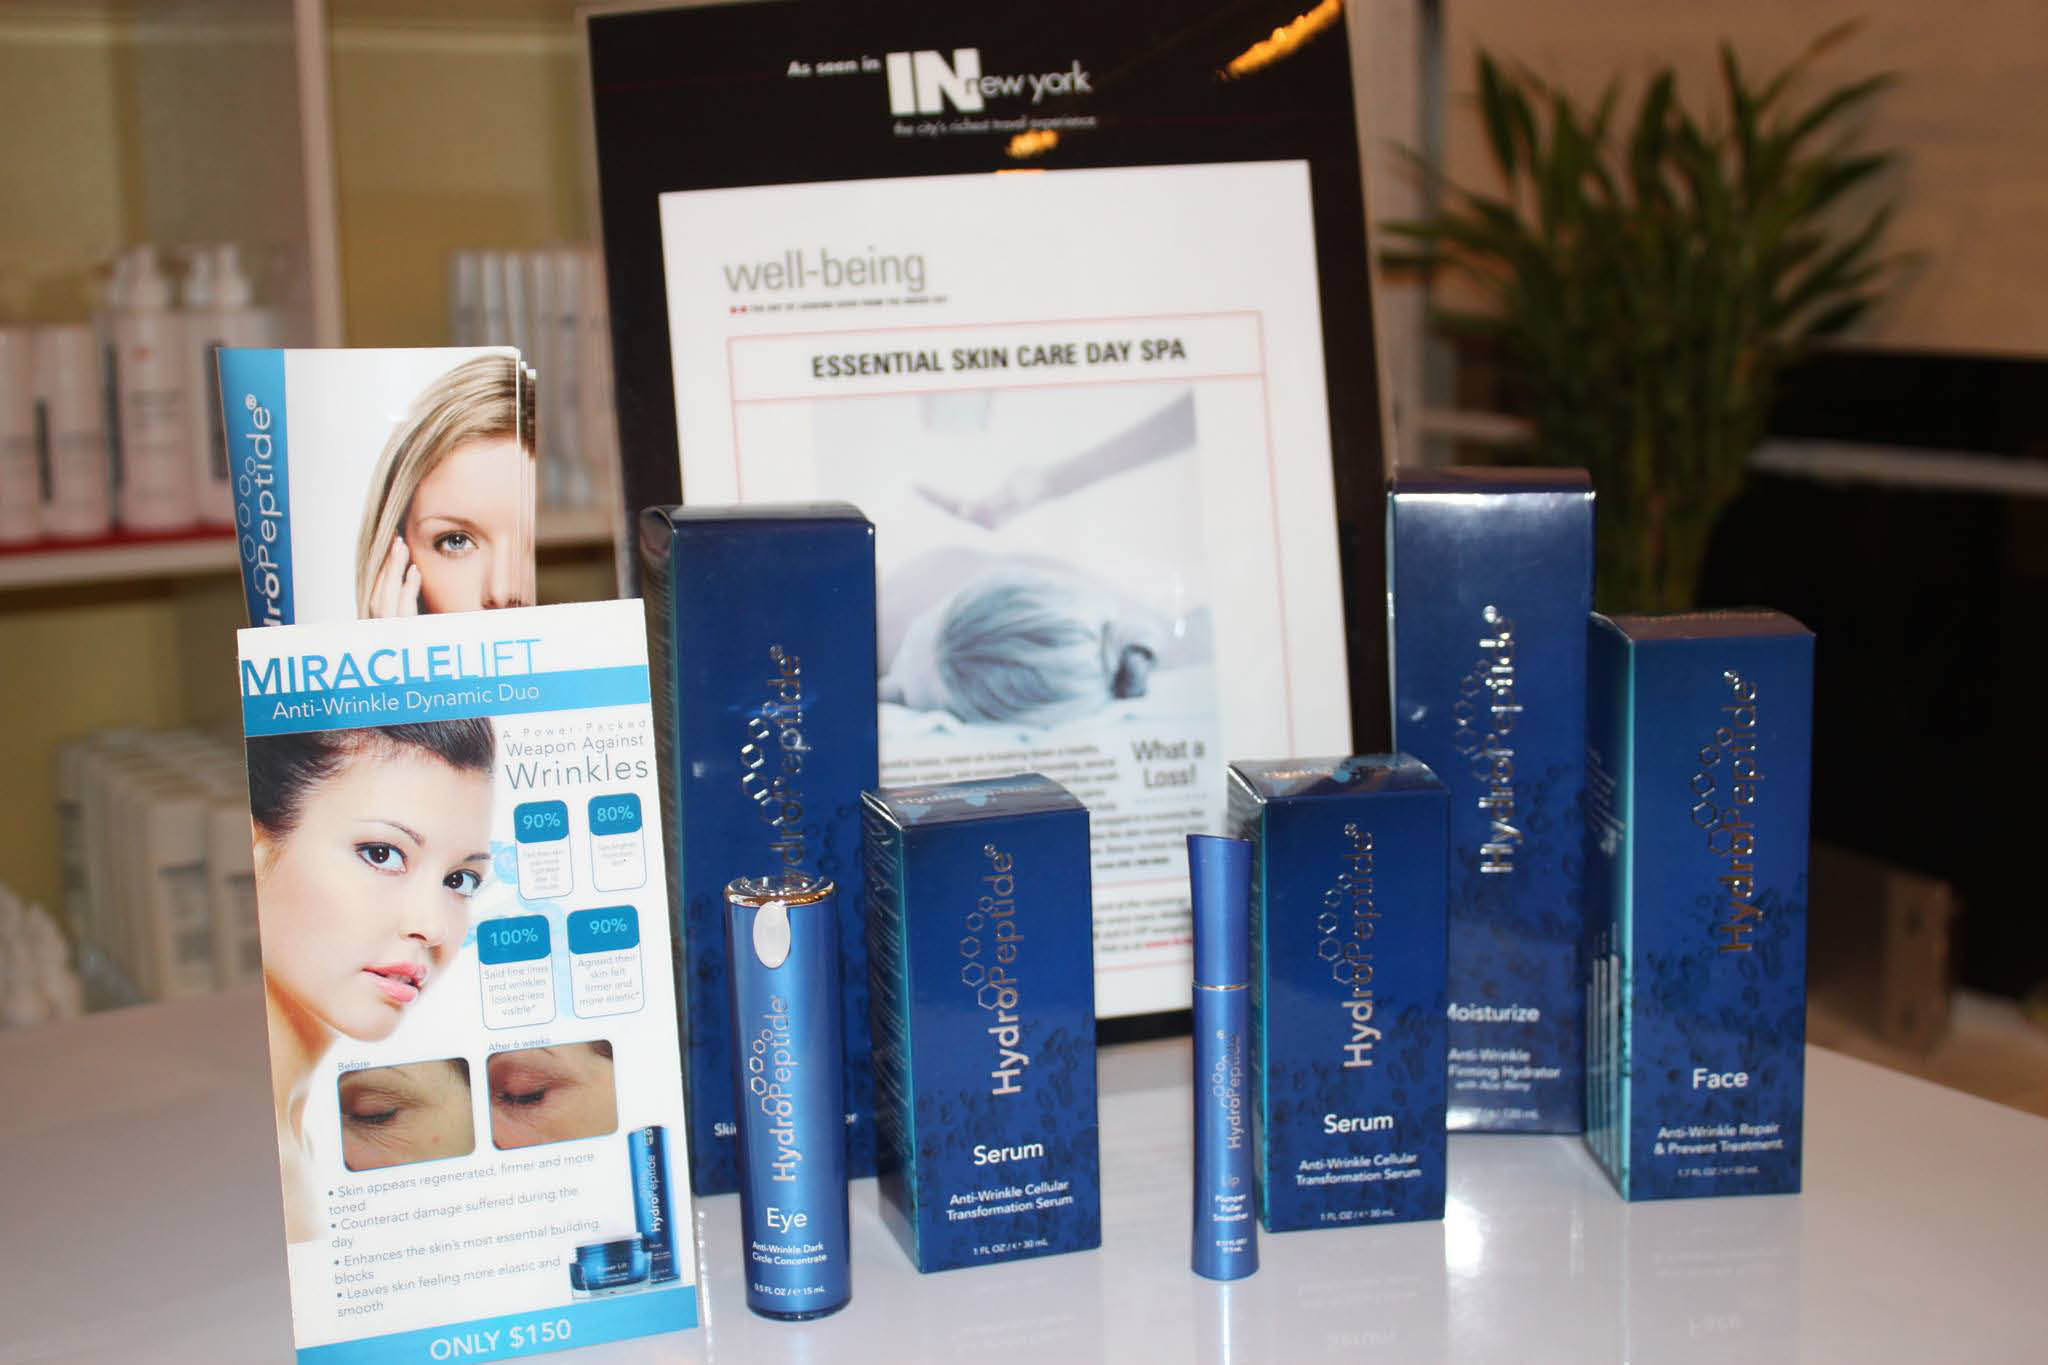 Essential Day Spa uses the HydroPeptide line of beauty products